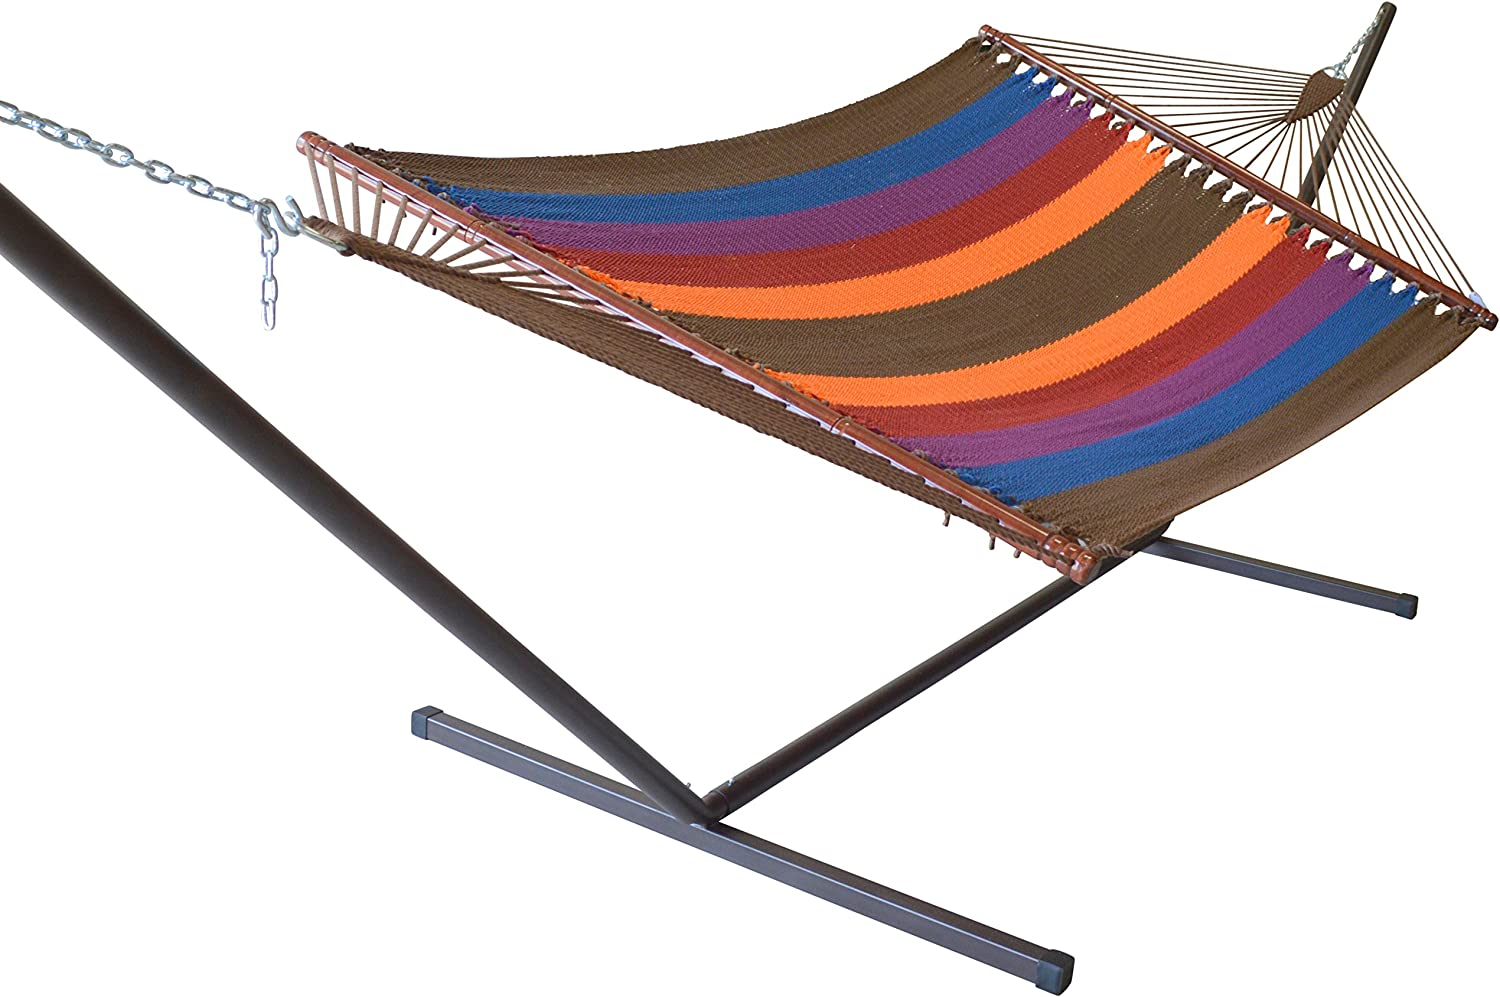 Caribbean Hammocks Jumbo Hammock and 15 ft Tribeam Stand - Multi Color Dark Blue